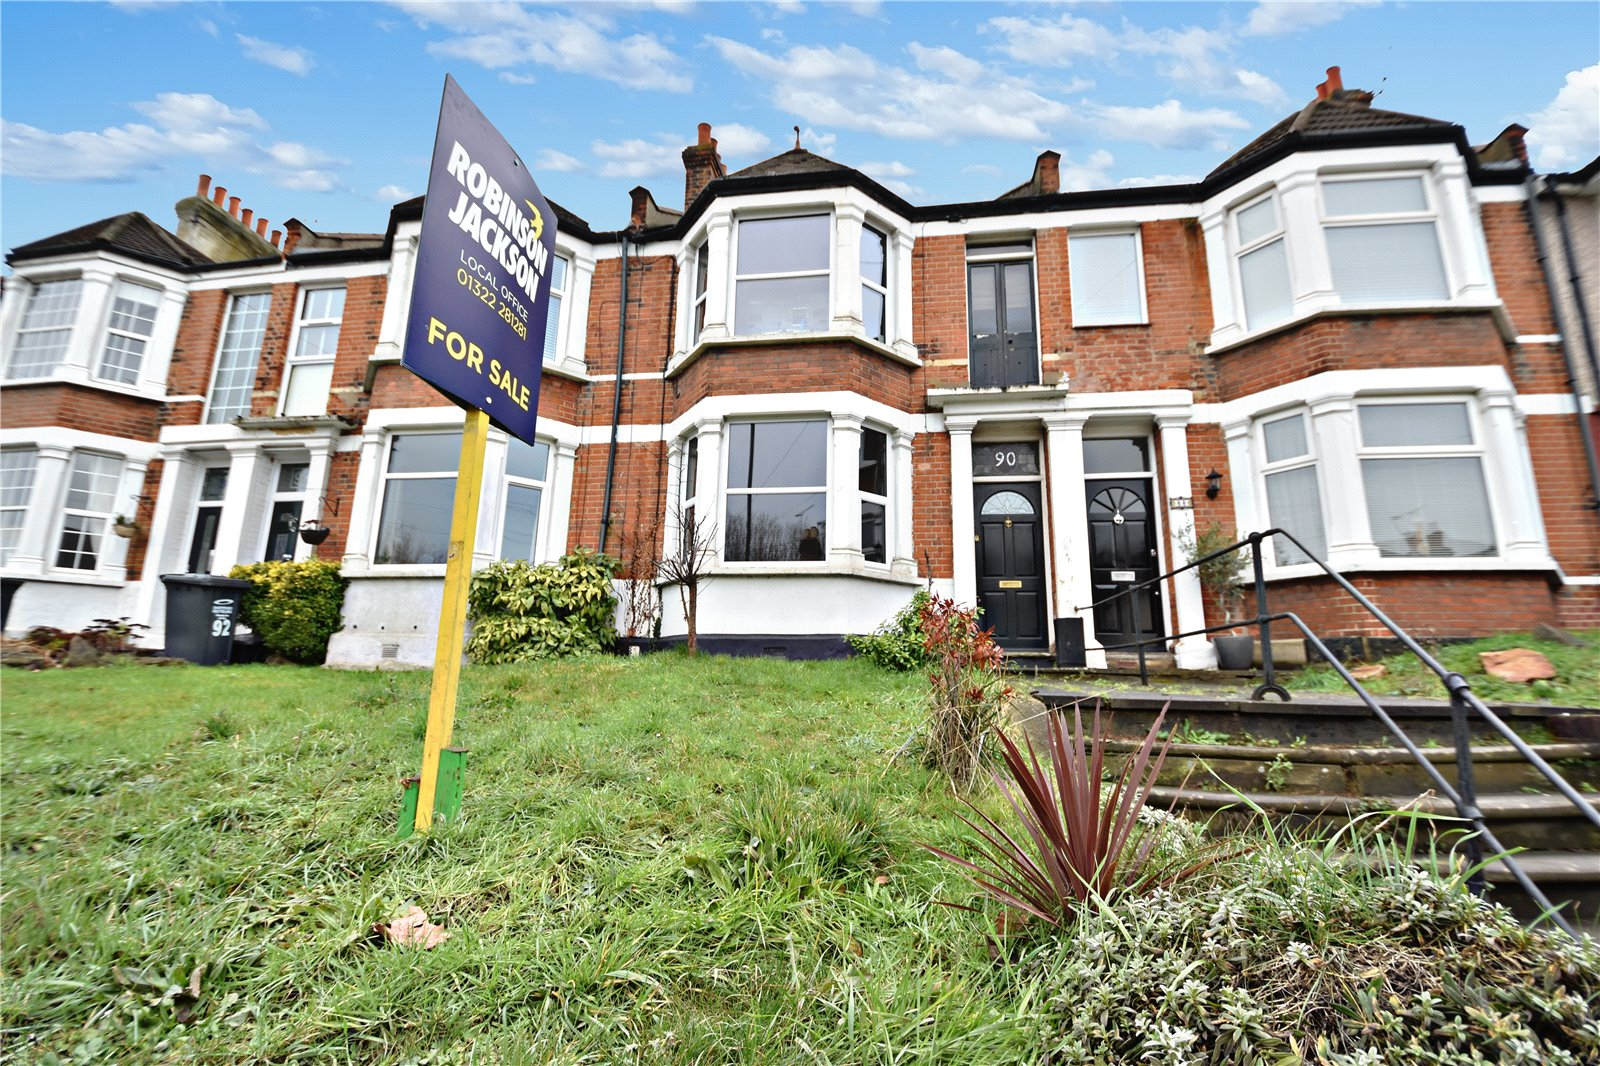 Hawley Road, Dartford, Kent, DA1